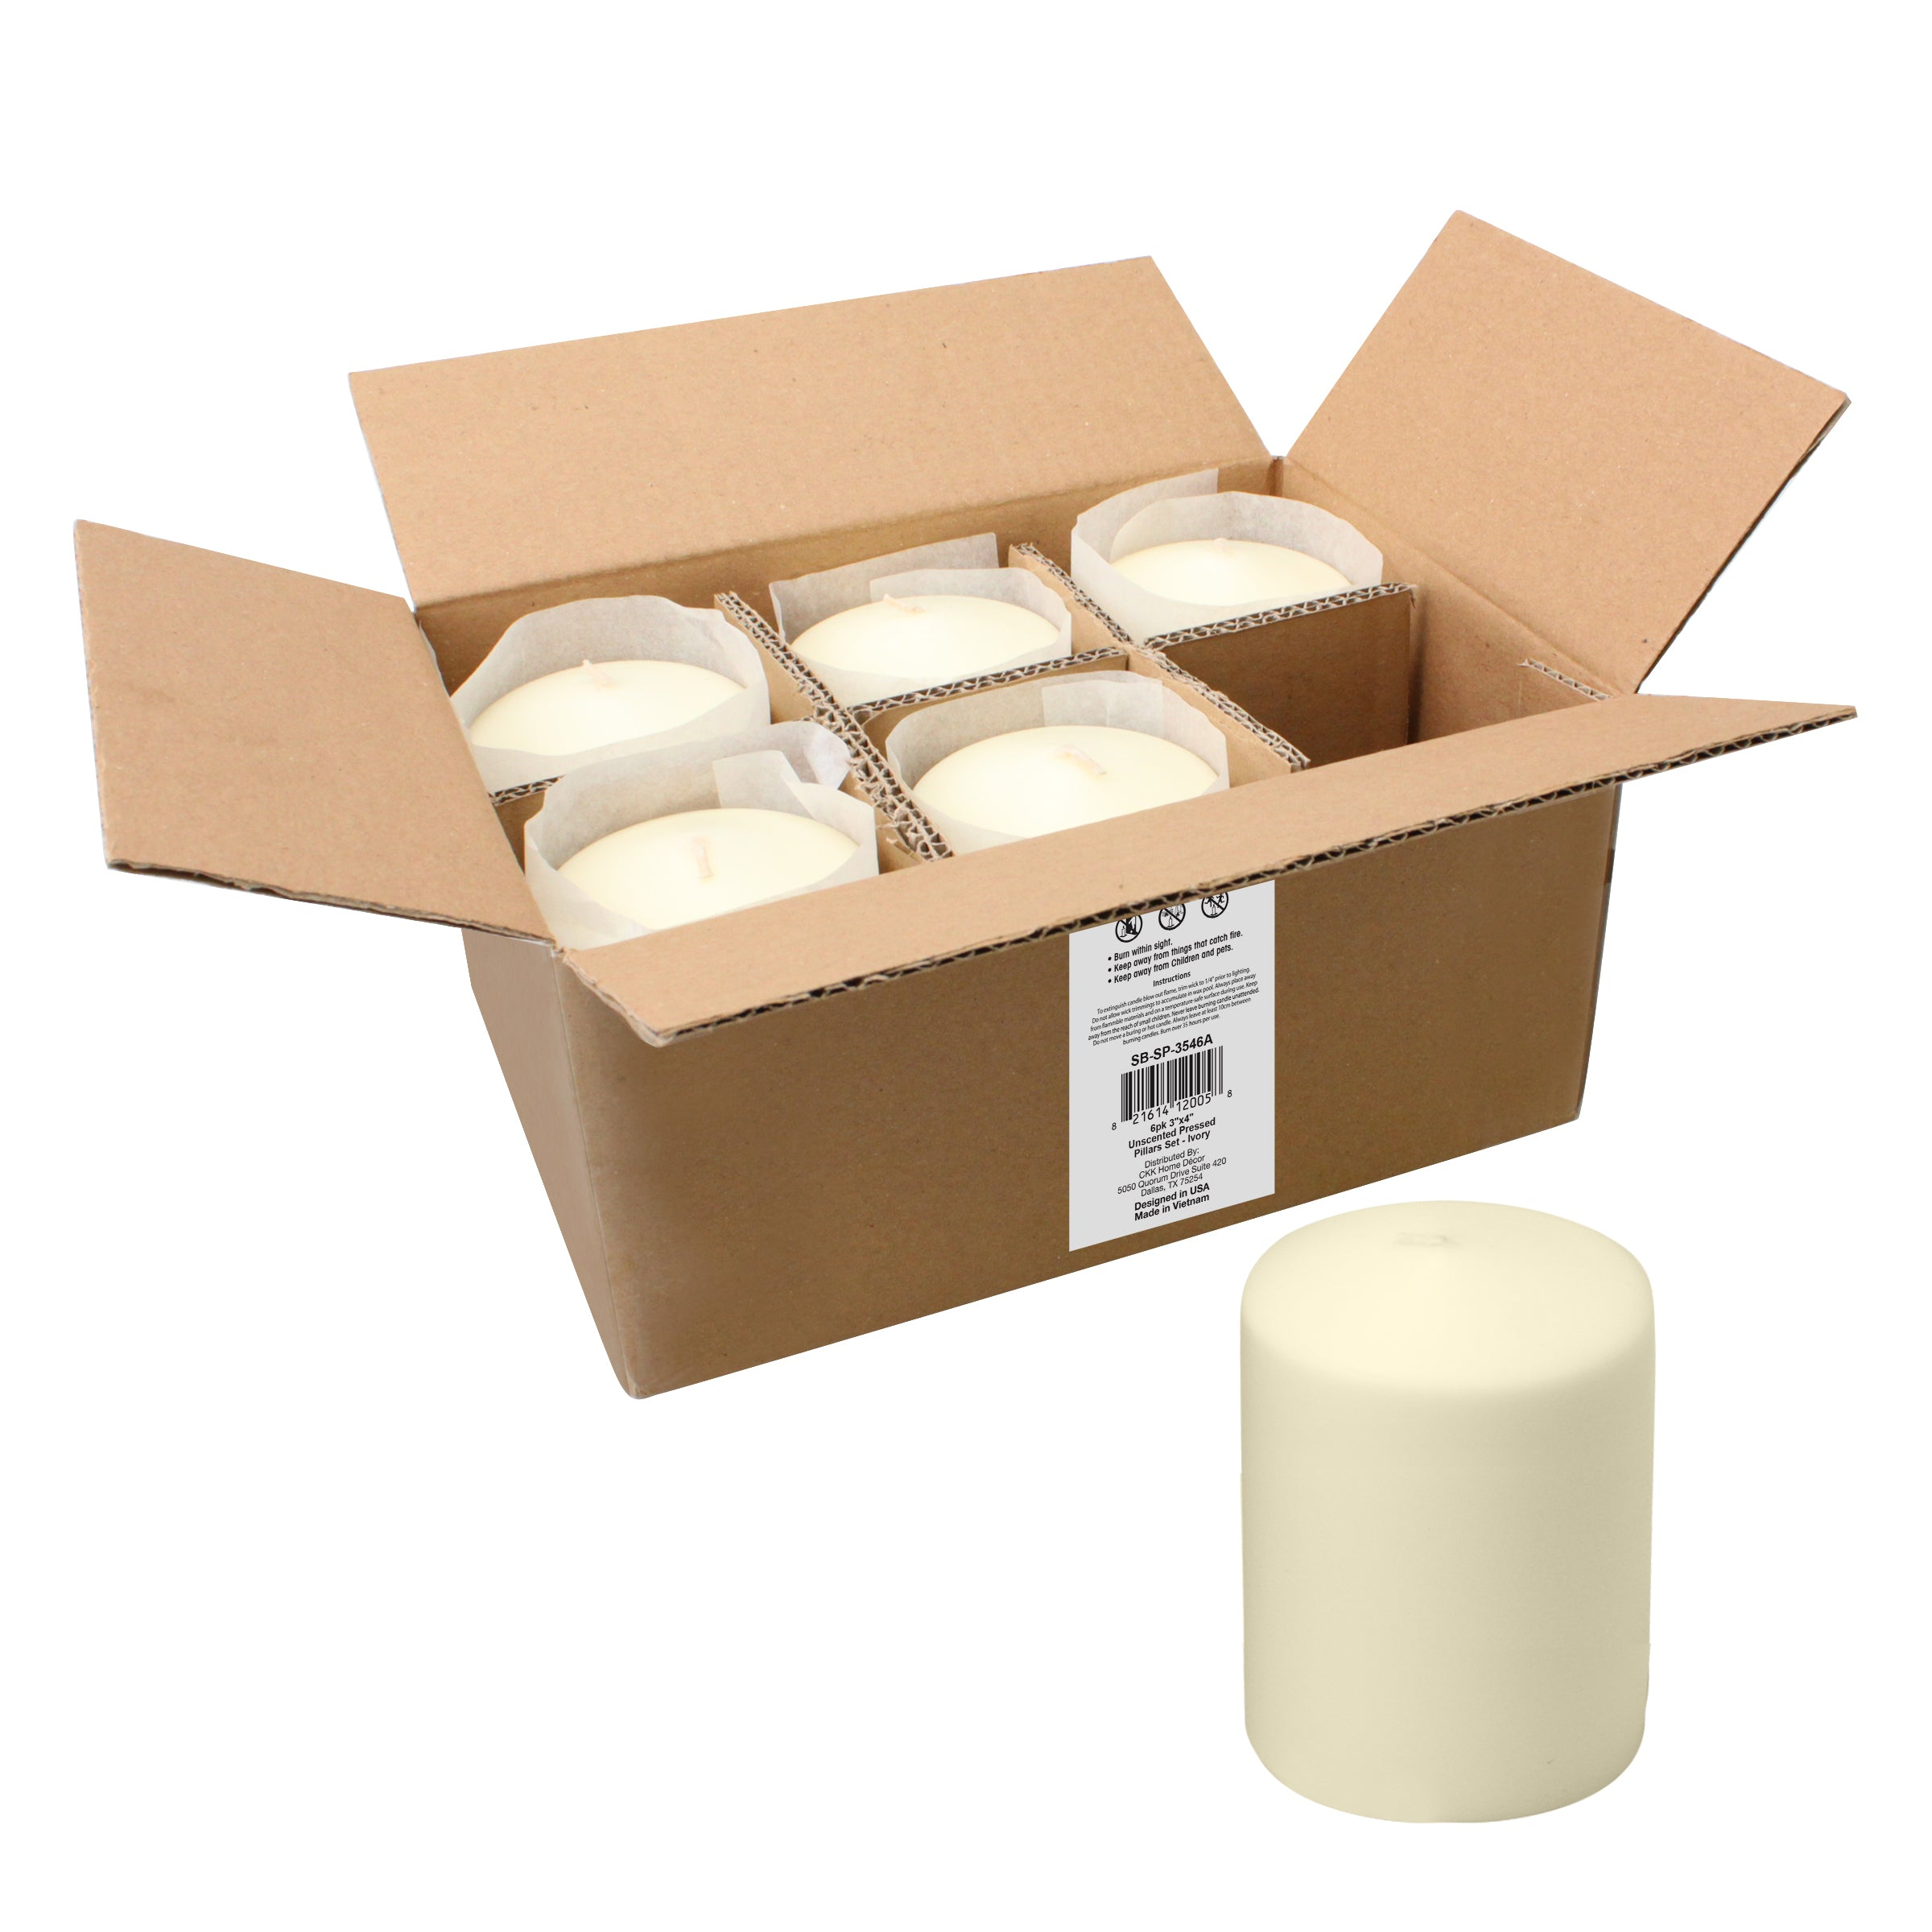 3 x 4 Unscented Ivory Pillar Candles, Set of 6 (WS)